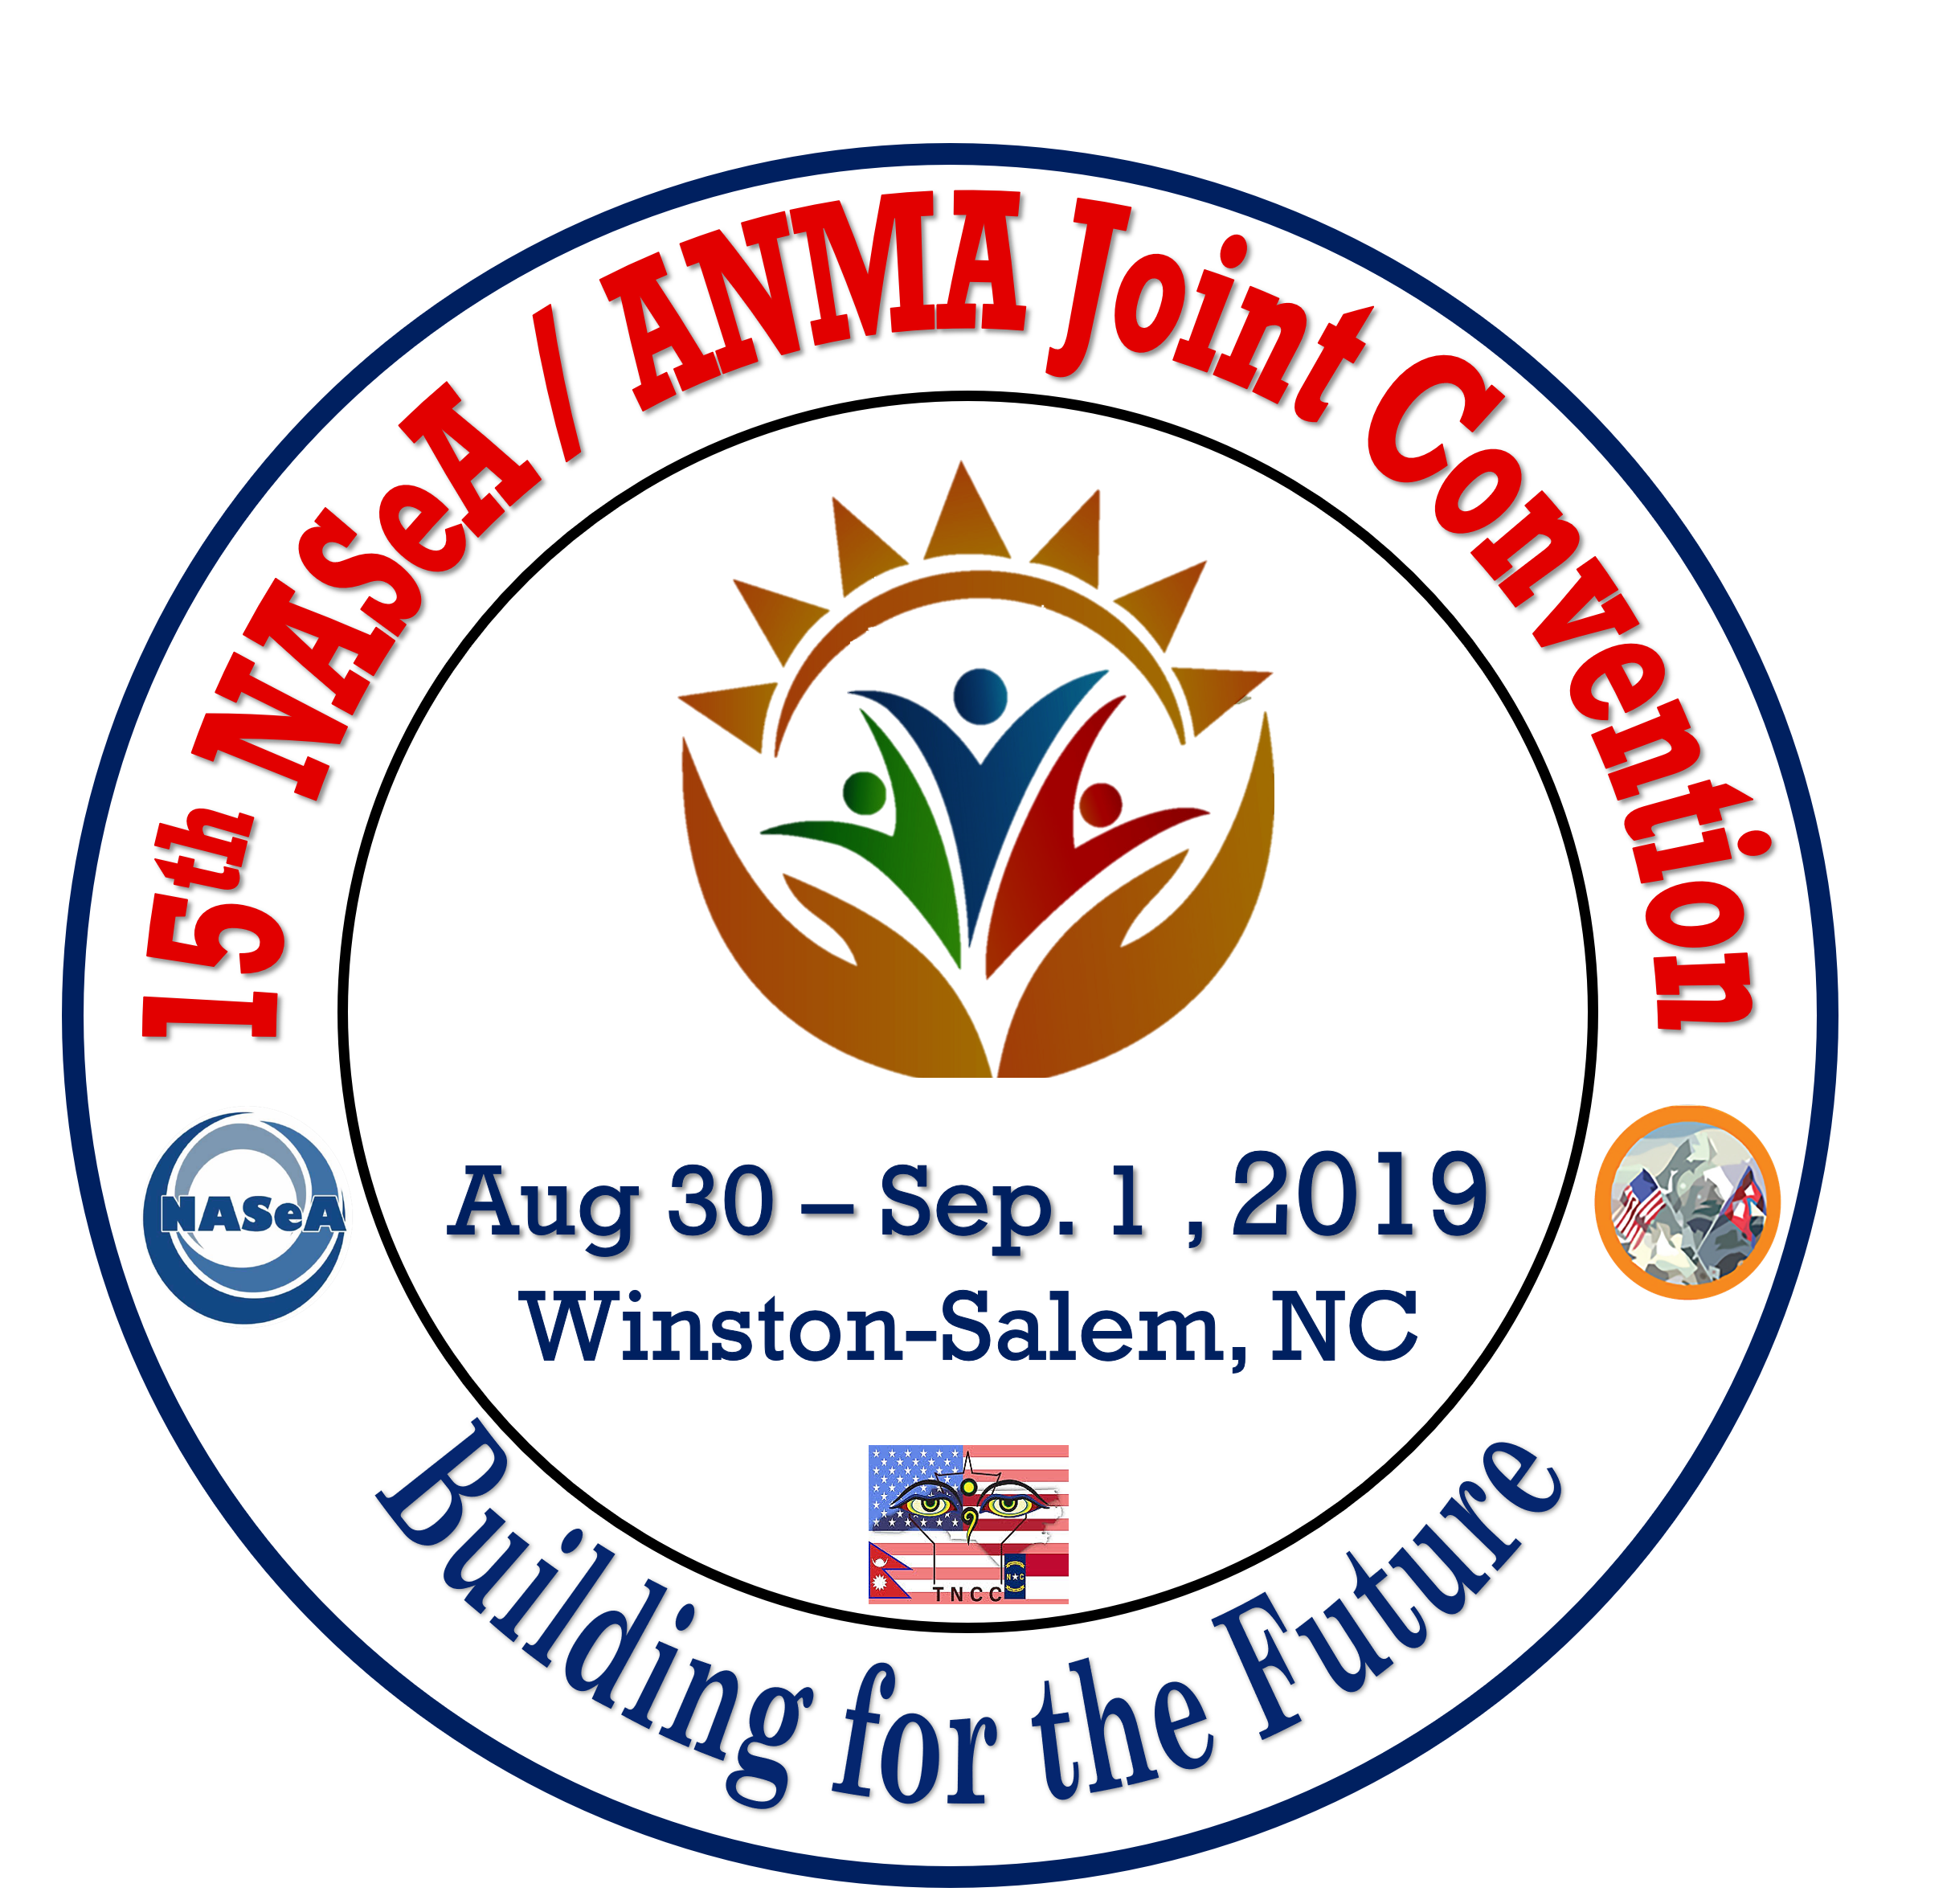 15th NASeA/ANMA Joint Convention